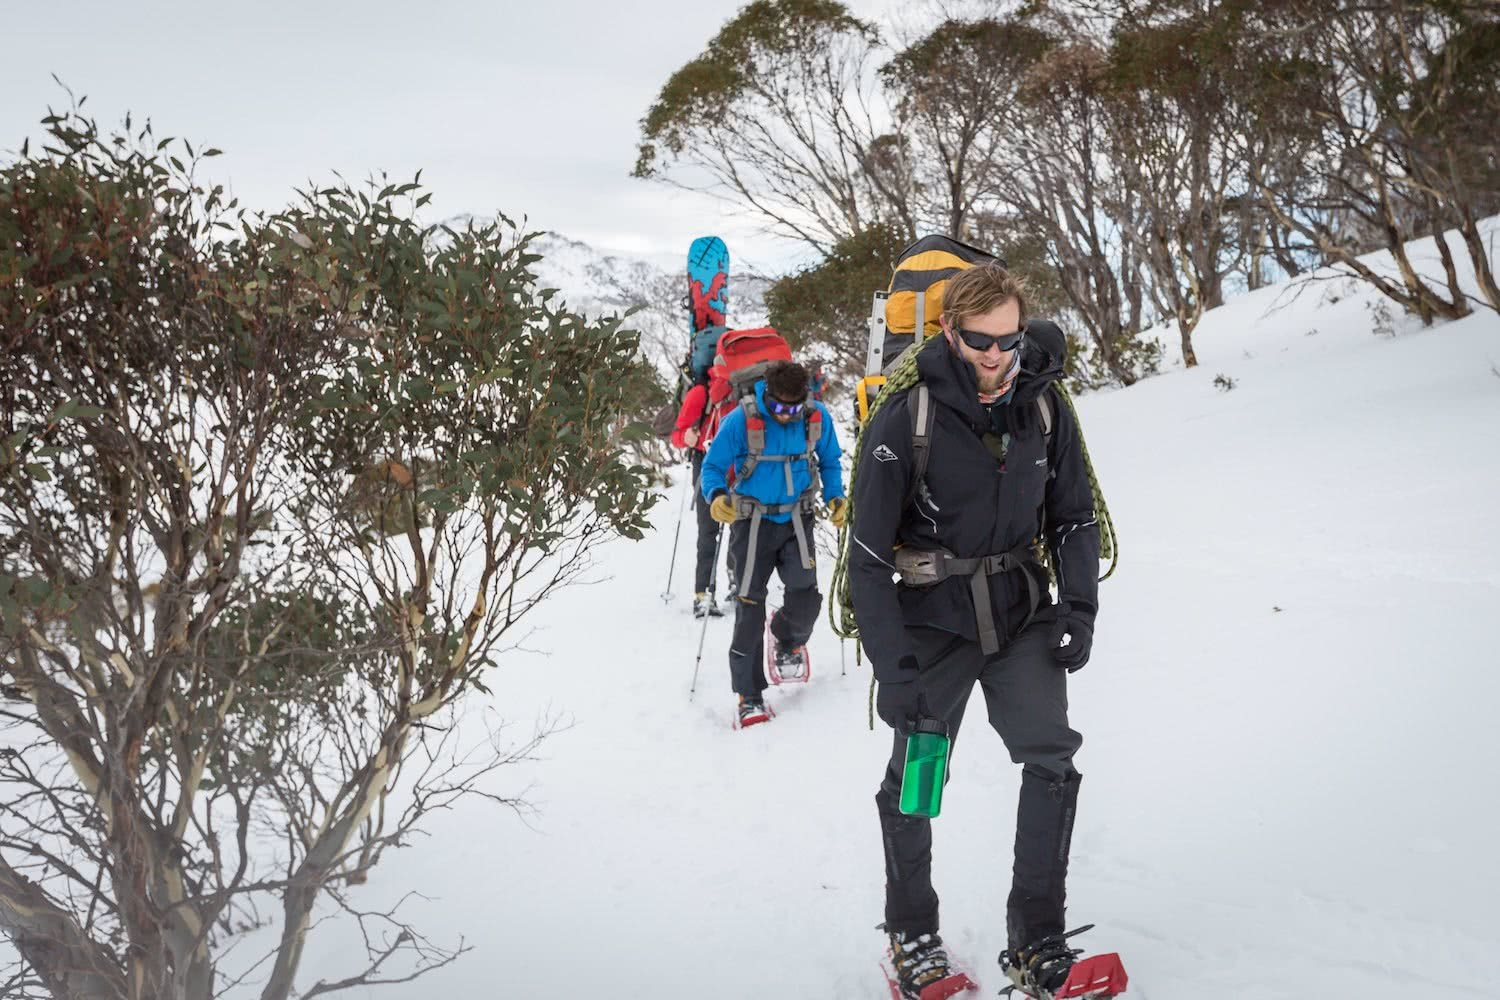 nathan mcneil, ice climbing, blue lake, south rams head, snowshoeing, ice climbing, Kosciuszko national park